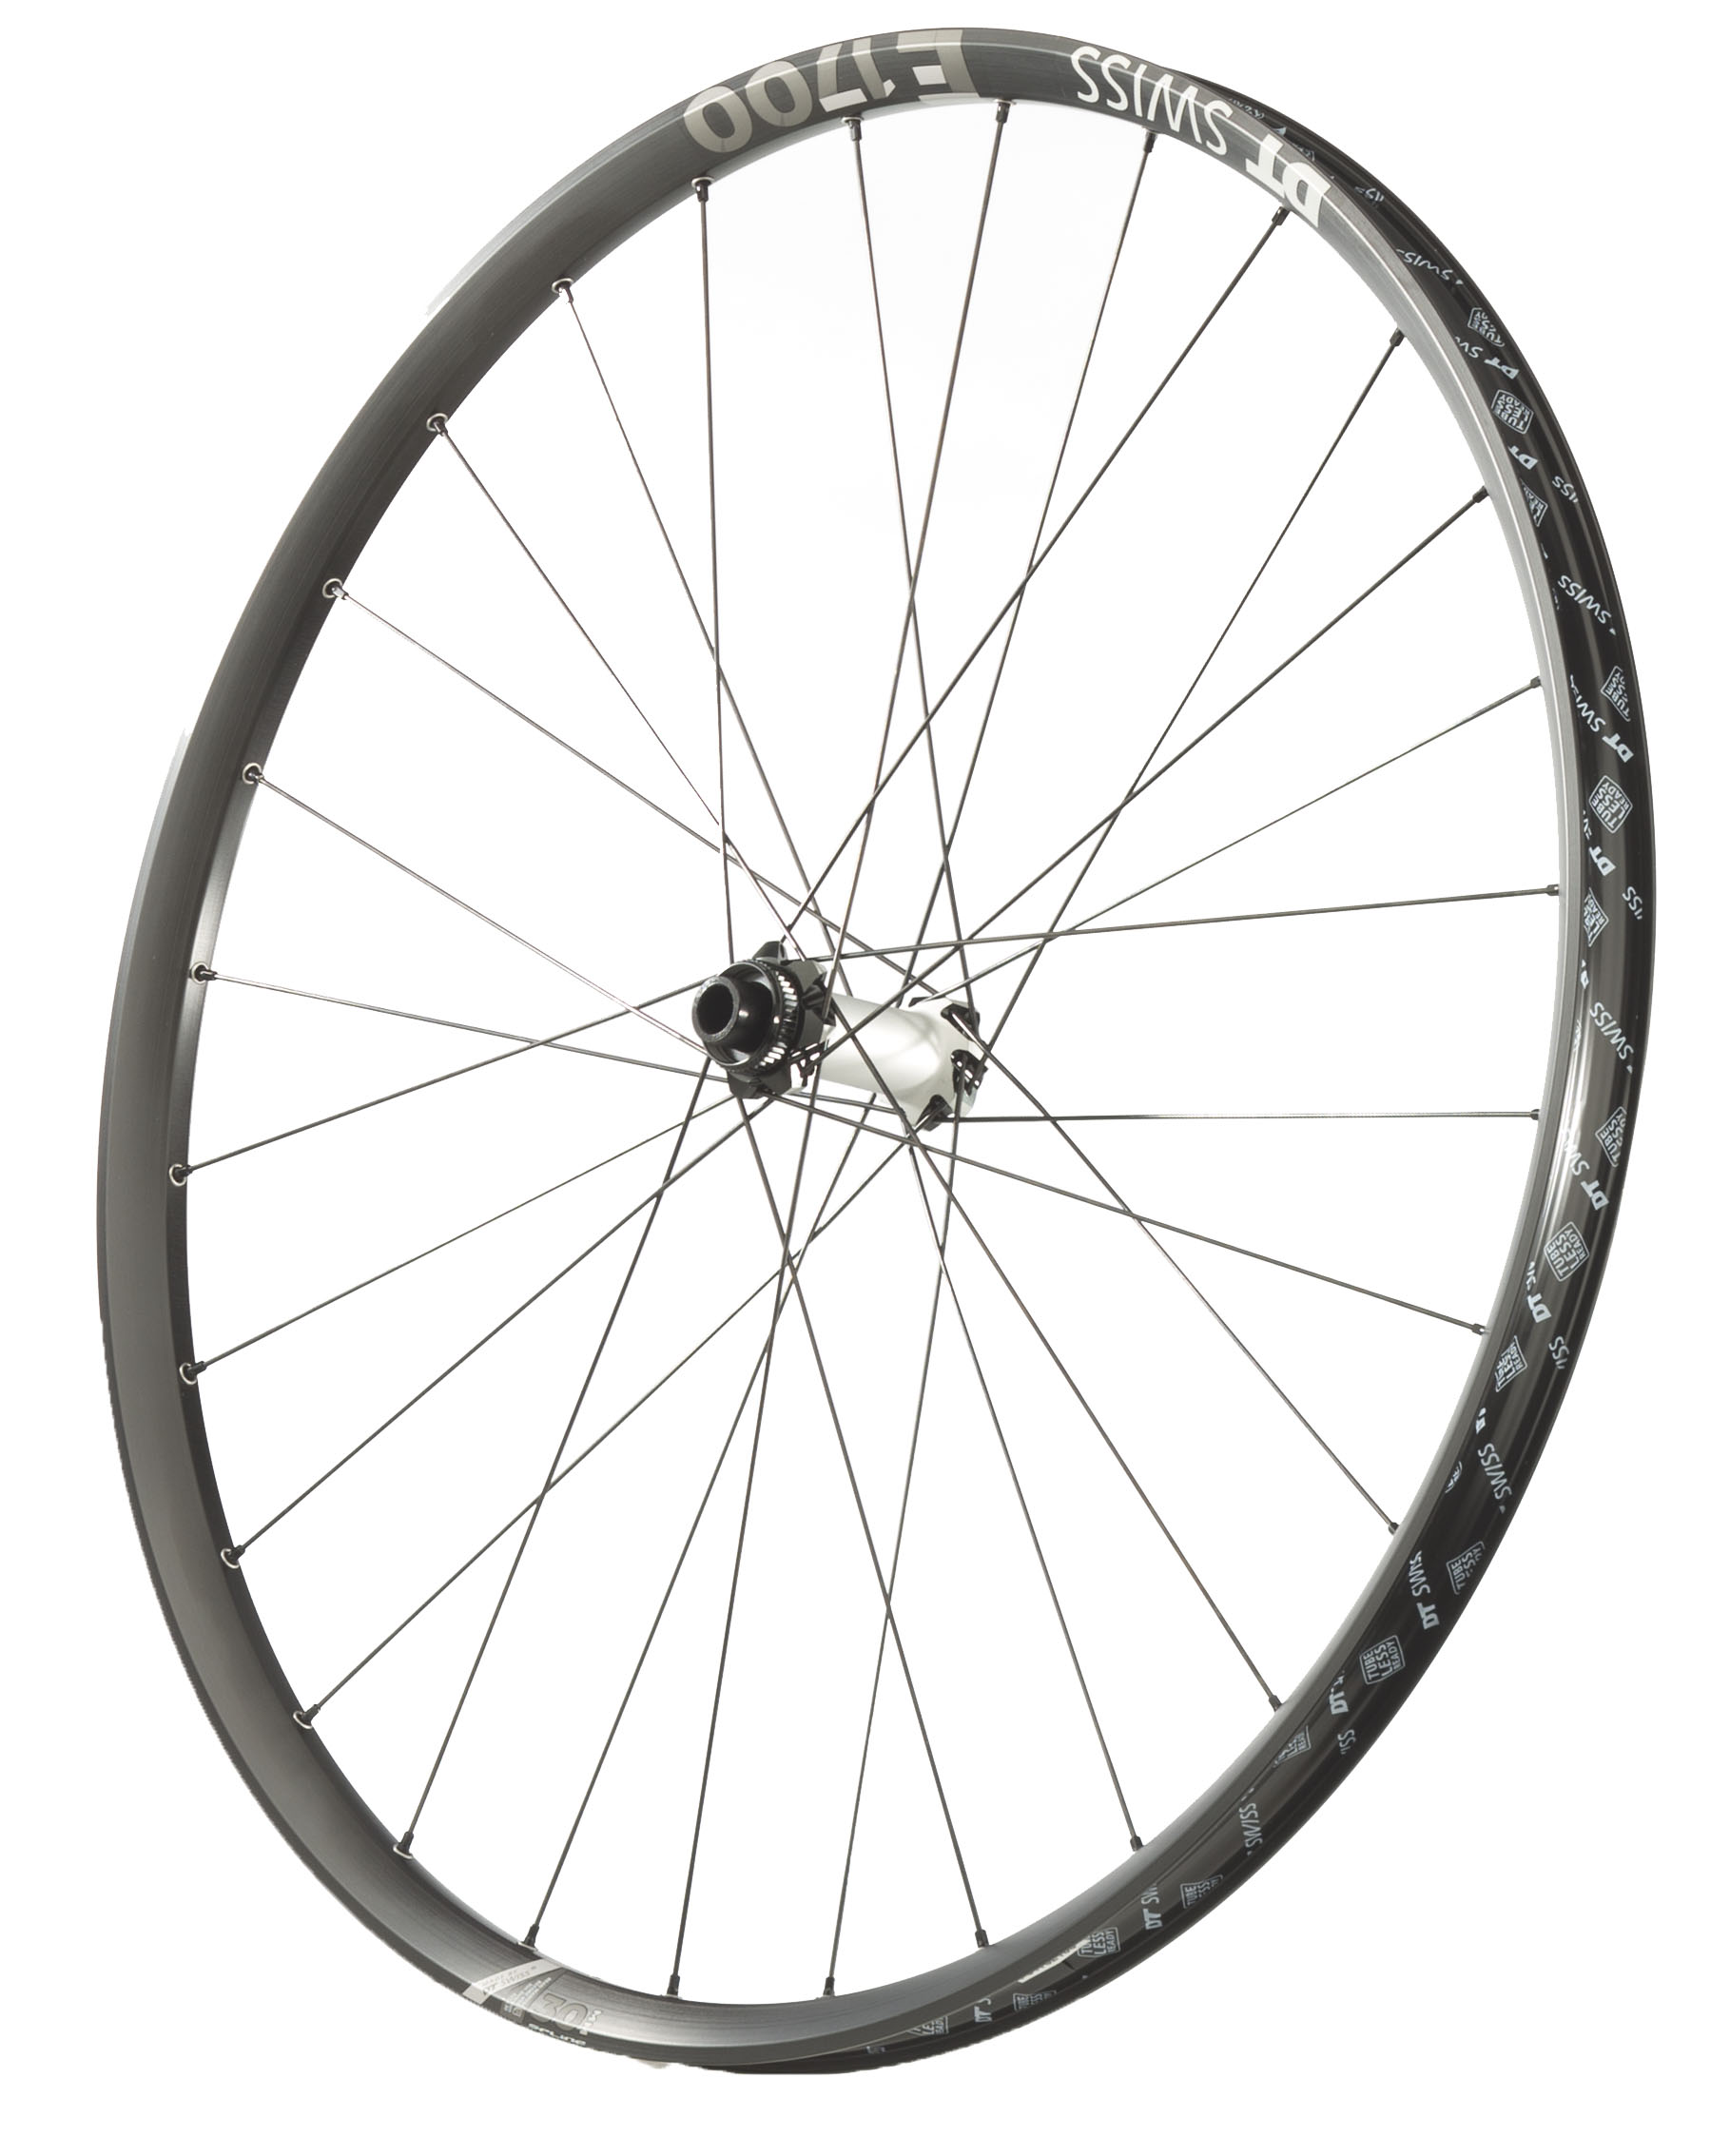 """DT SWISS X 1800 26/"""" MTB REPLACEMENT RIM//HUB DECAL SET FOR 2 RIMS"""